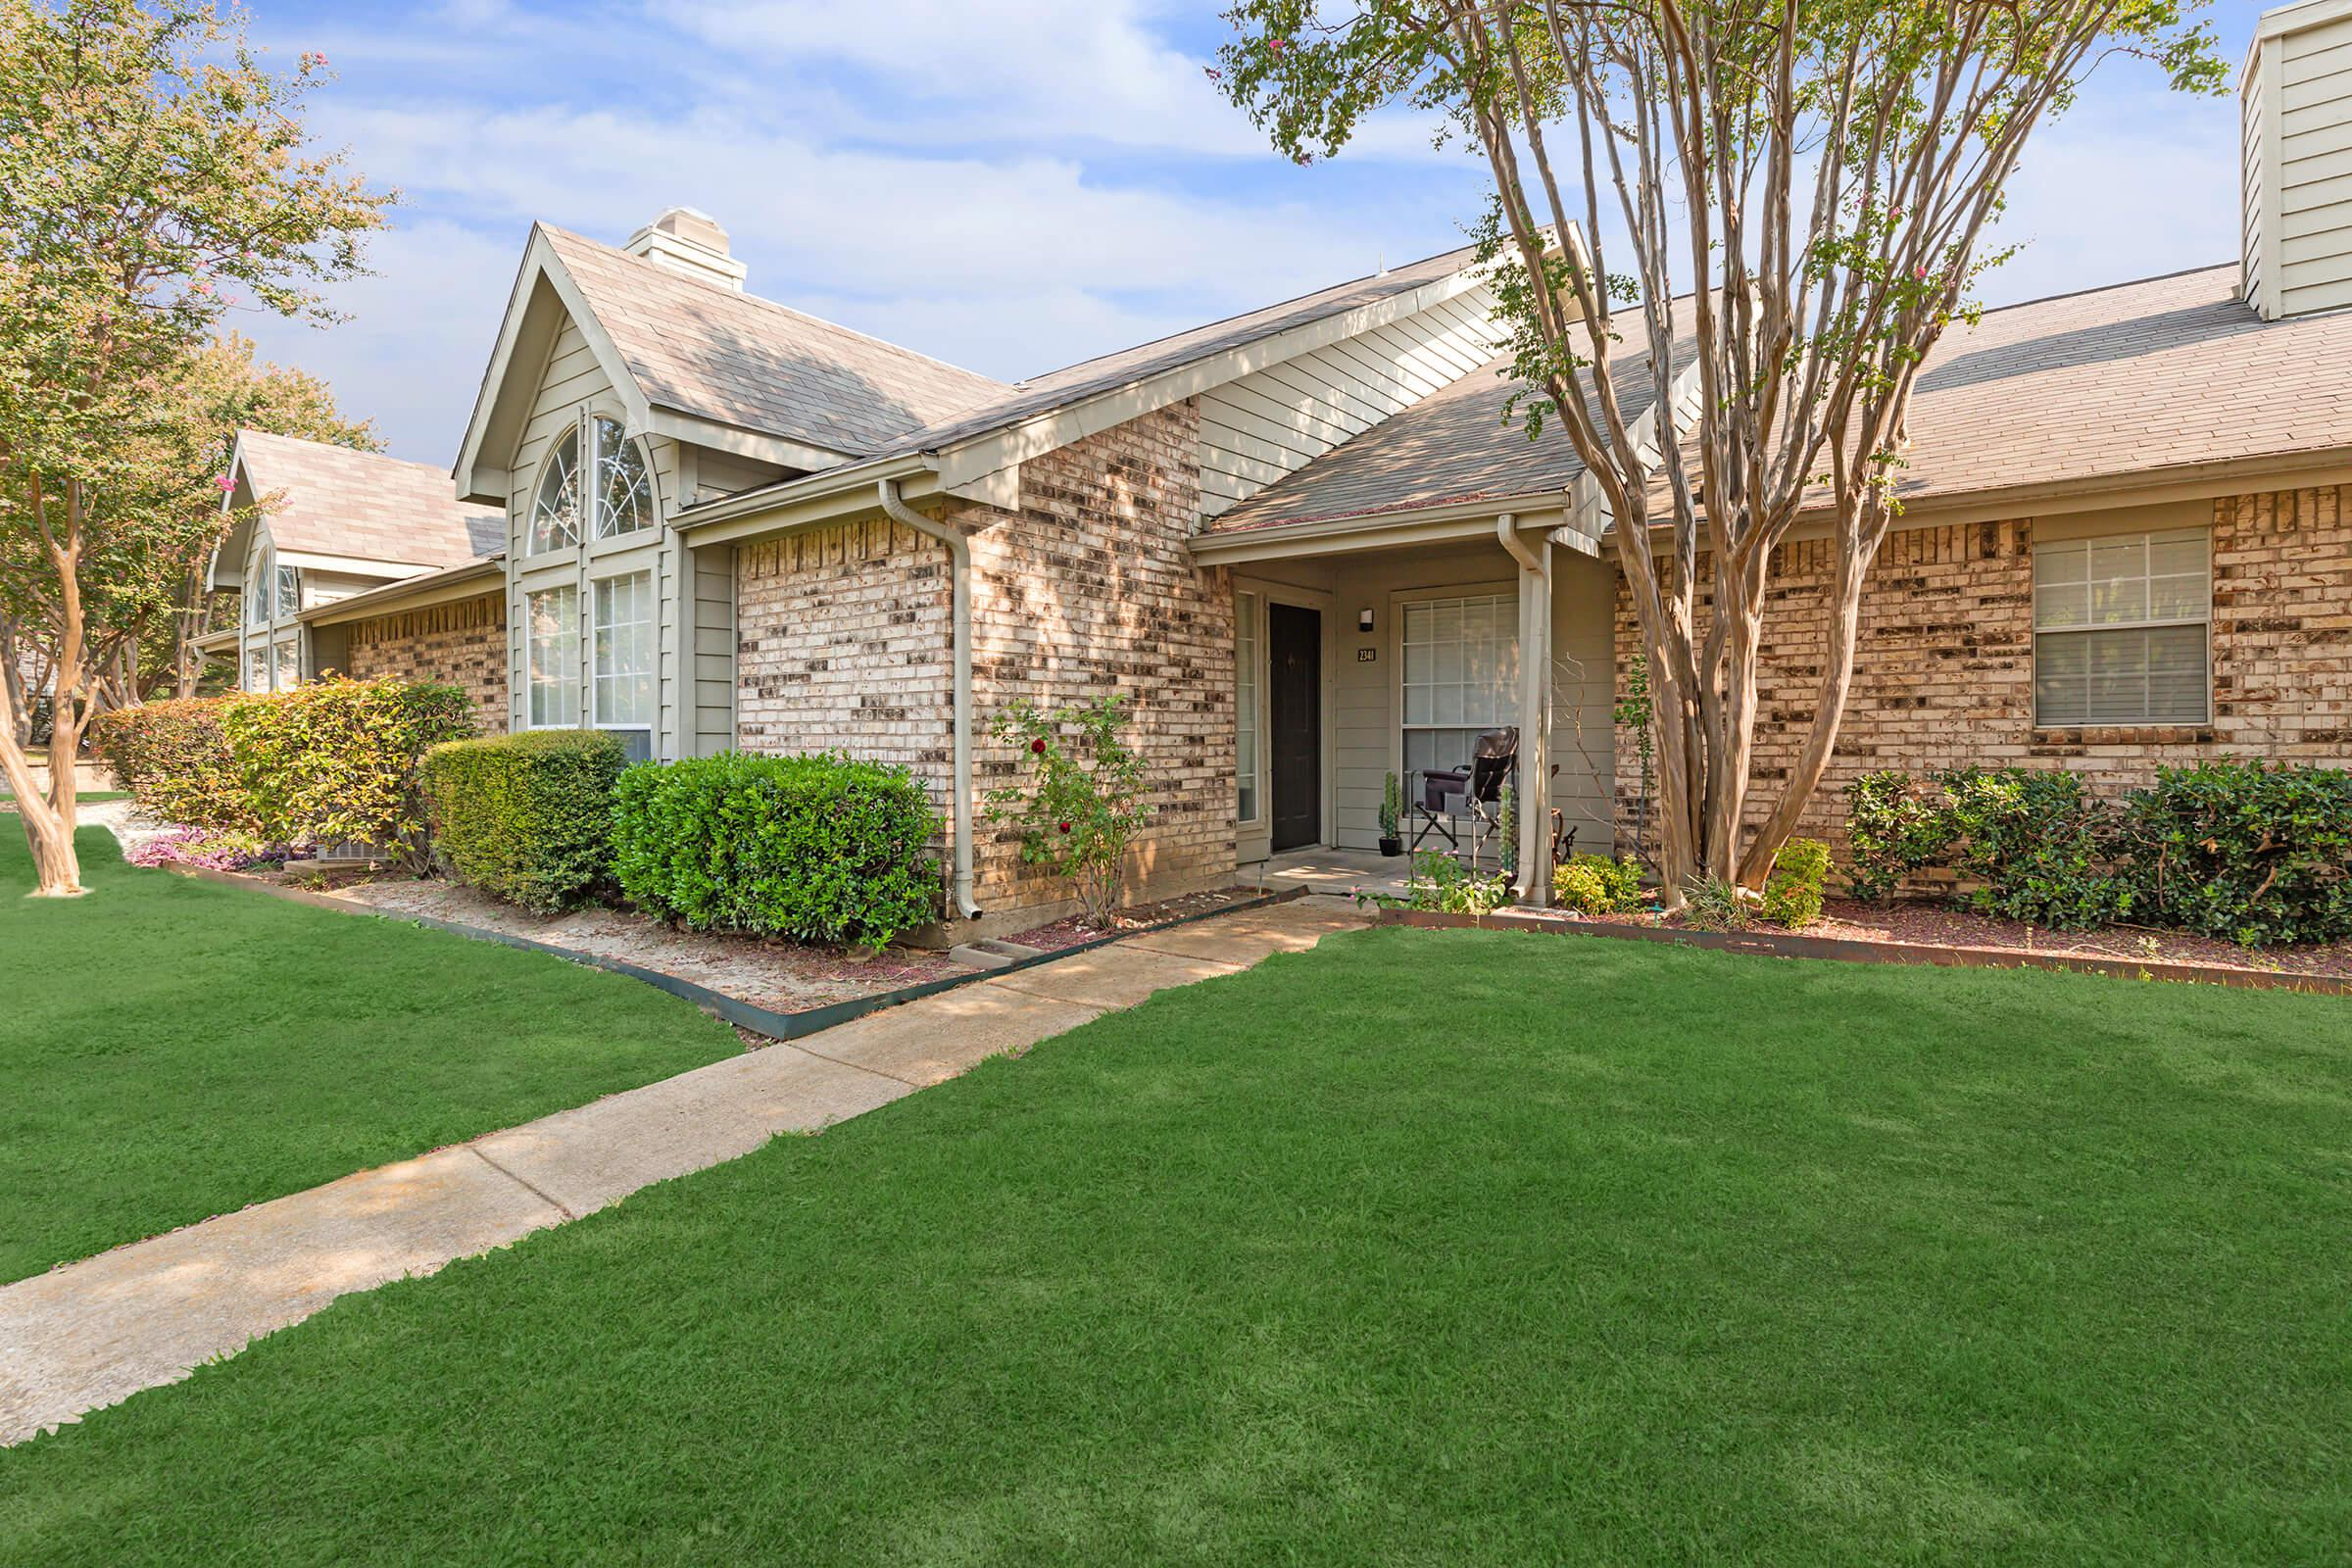 ONE AND TWO BEDROOM TOWNHOMES FOR RENT IN PLANO, TX